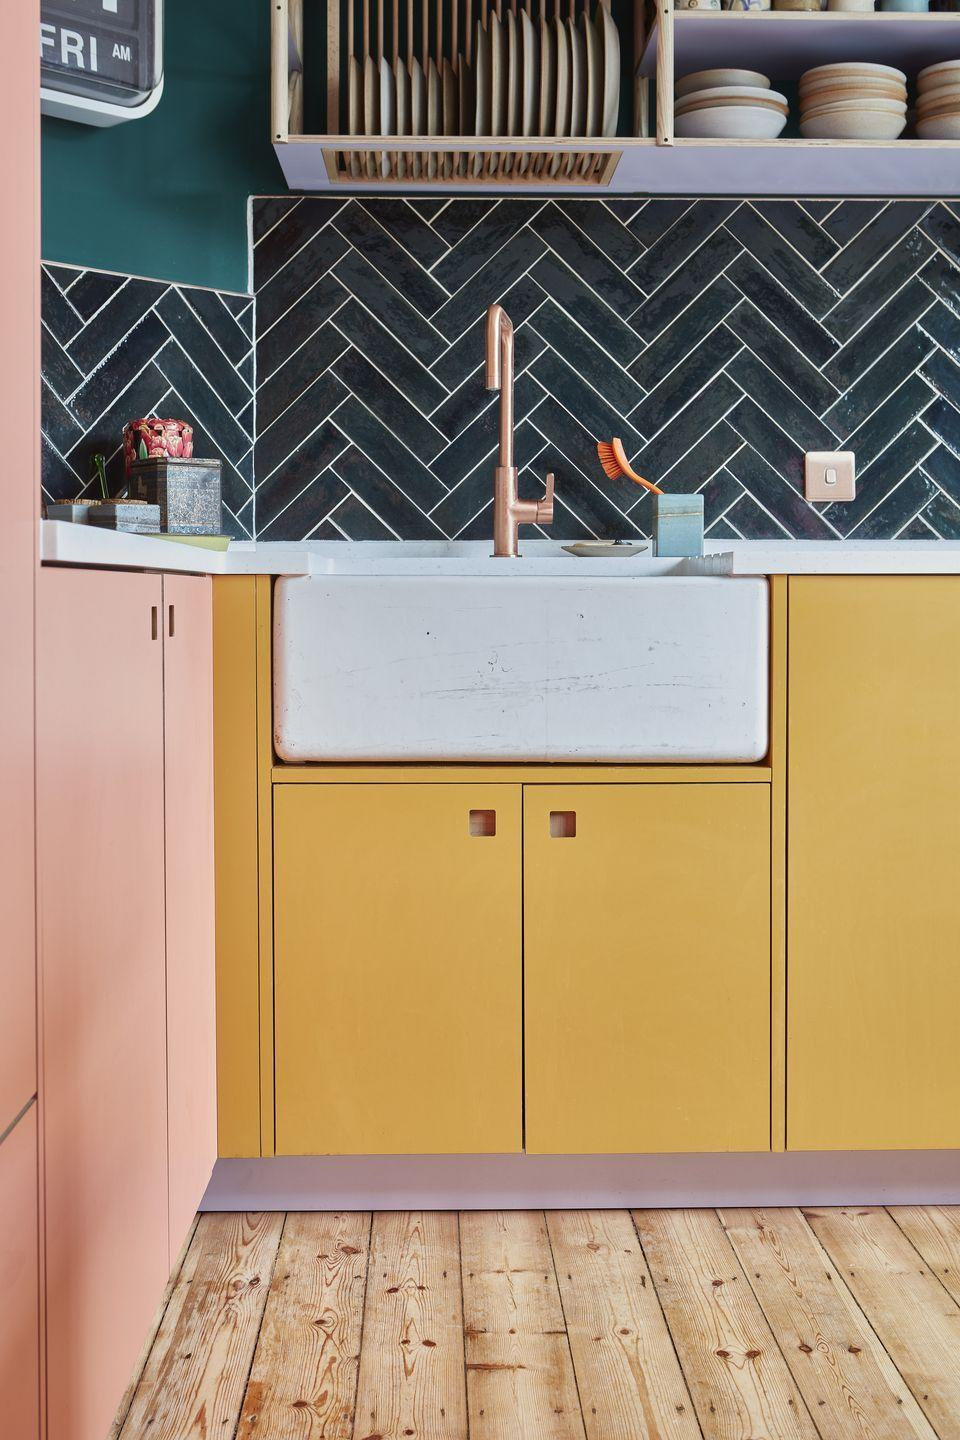 """<p>Why pick just one colour for your kitchen cupboards when you can have two, three or even four? This kitchen by Pluck combines pastel shades to joyful effect – even the kickboards have been given a lick of lilac. <a href=""""https://www.pluck.kitchen/"""" rel=""""nofollow noopener"""" target=""""_blank"""" data-ylk=""""slk:pluck.kitchen"""" class=""""link rapid-noclick-resp"""">pluck.kitchen</a></p>"""